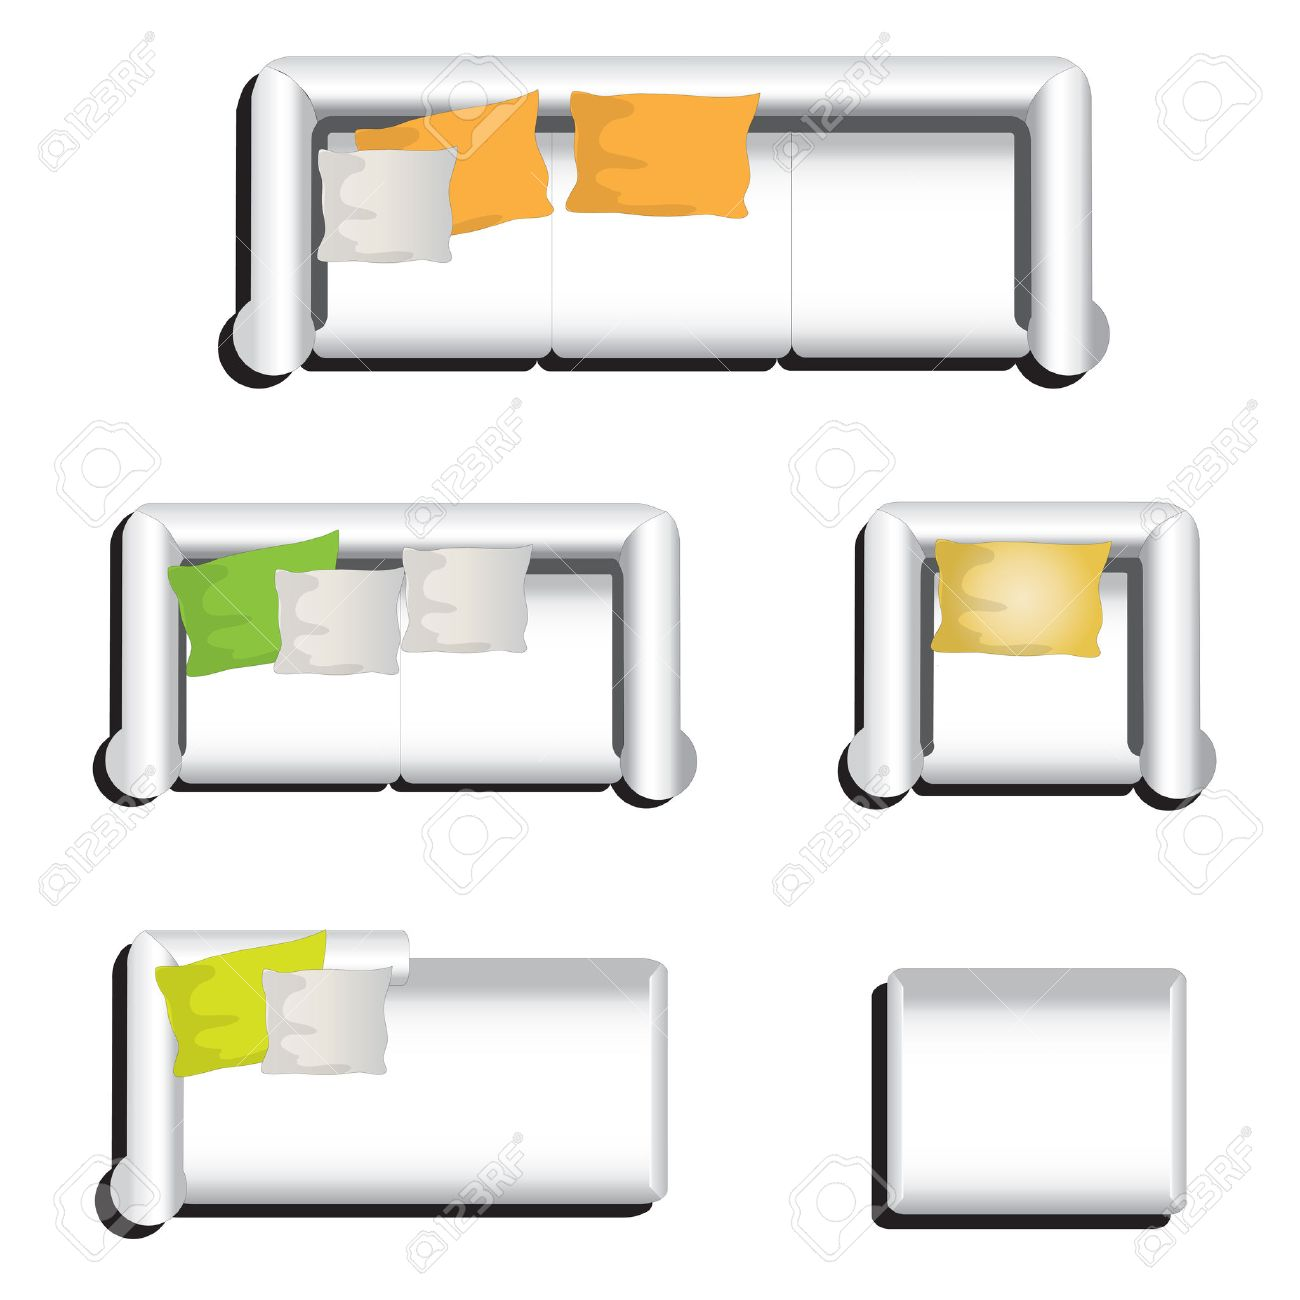 Furniture top view images - Furniture Top View Set 31 For Interior Vector Illustration White Sofa Stock Vector